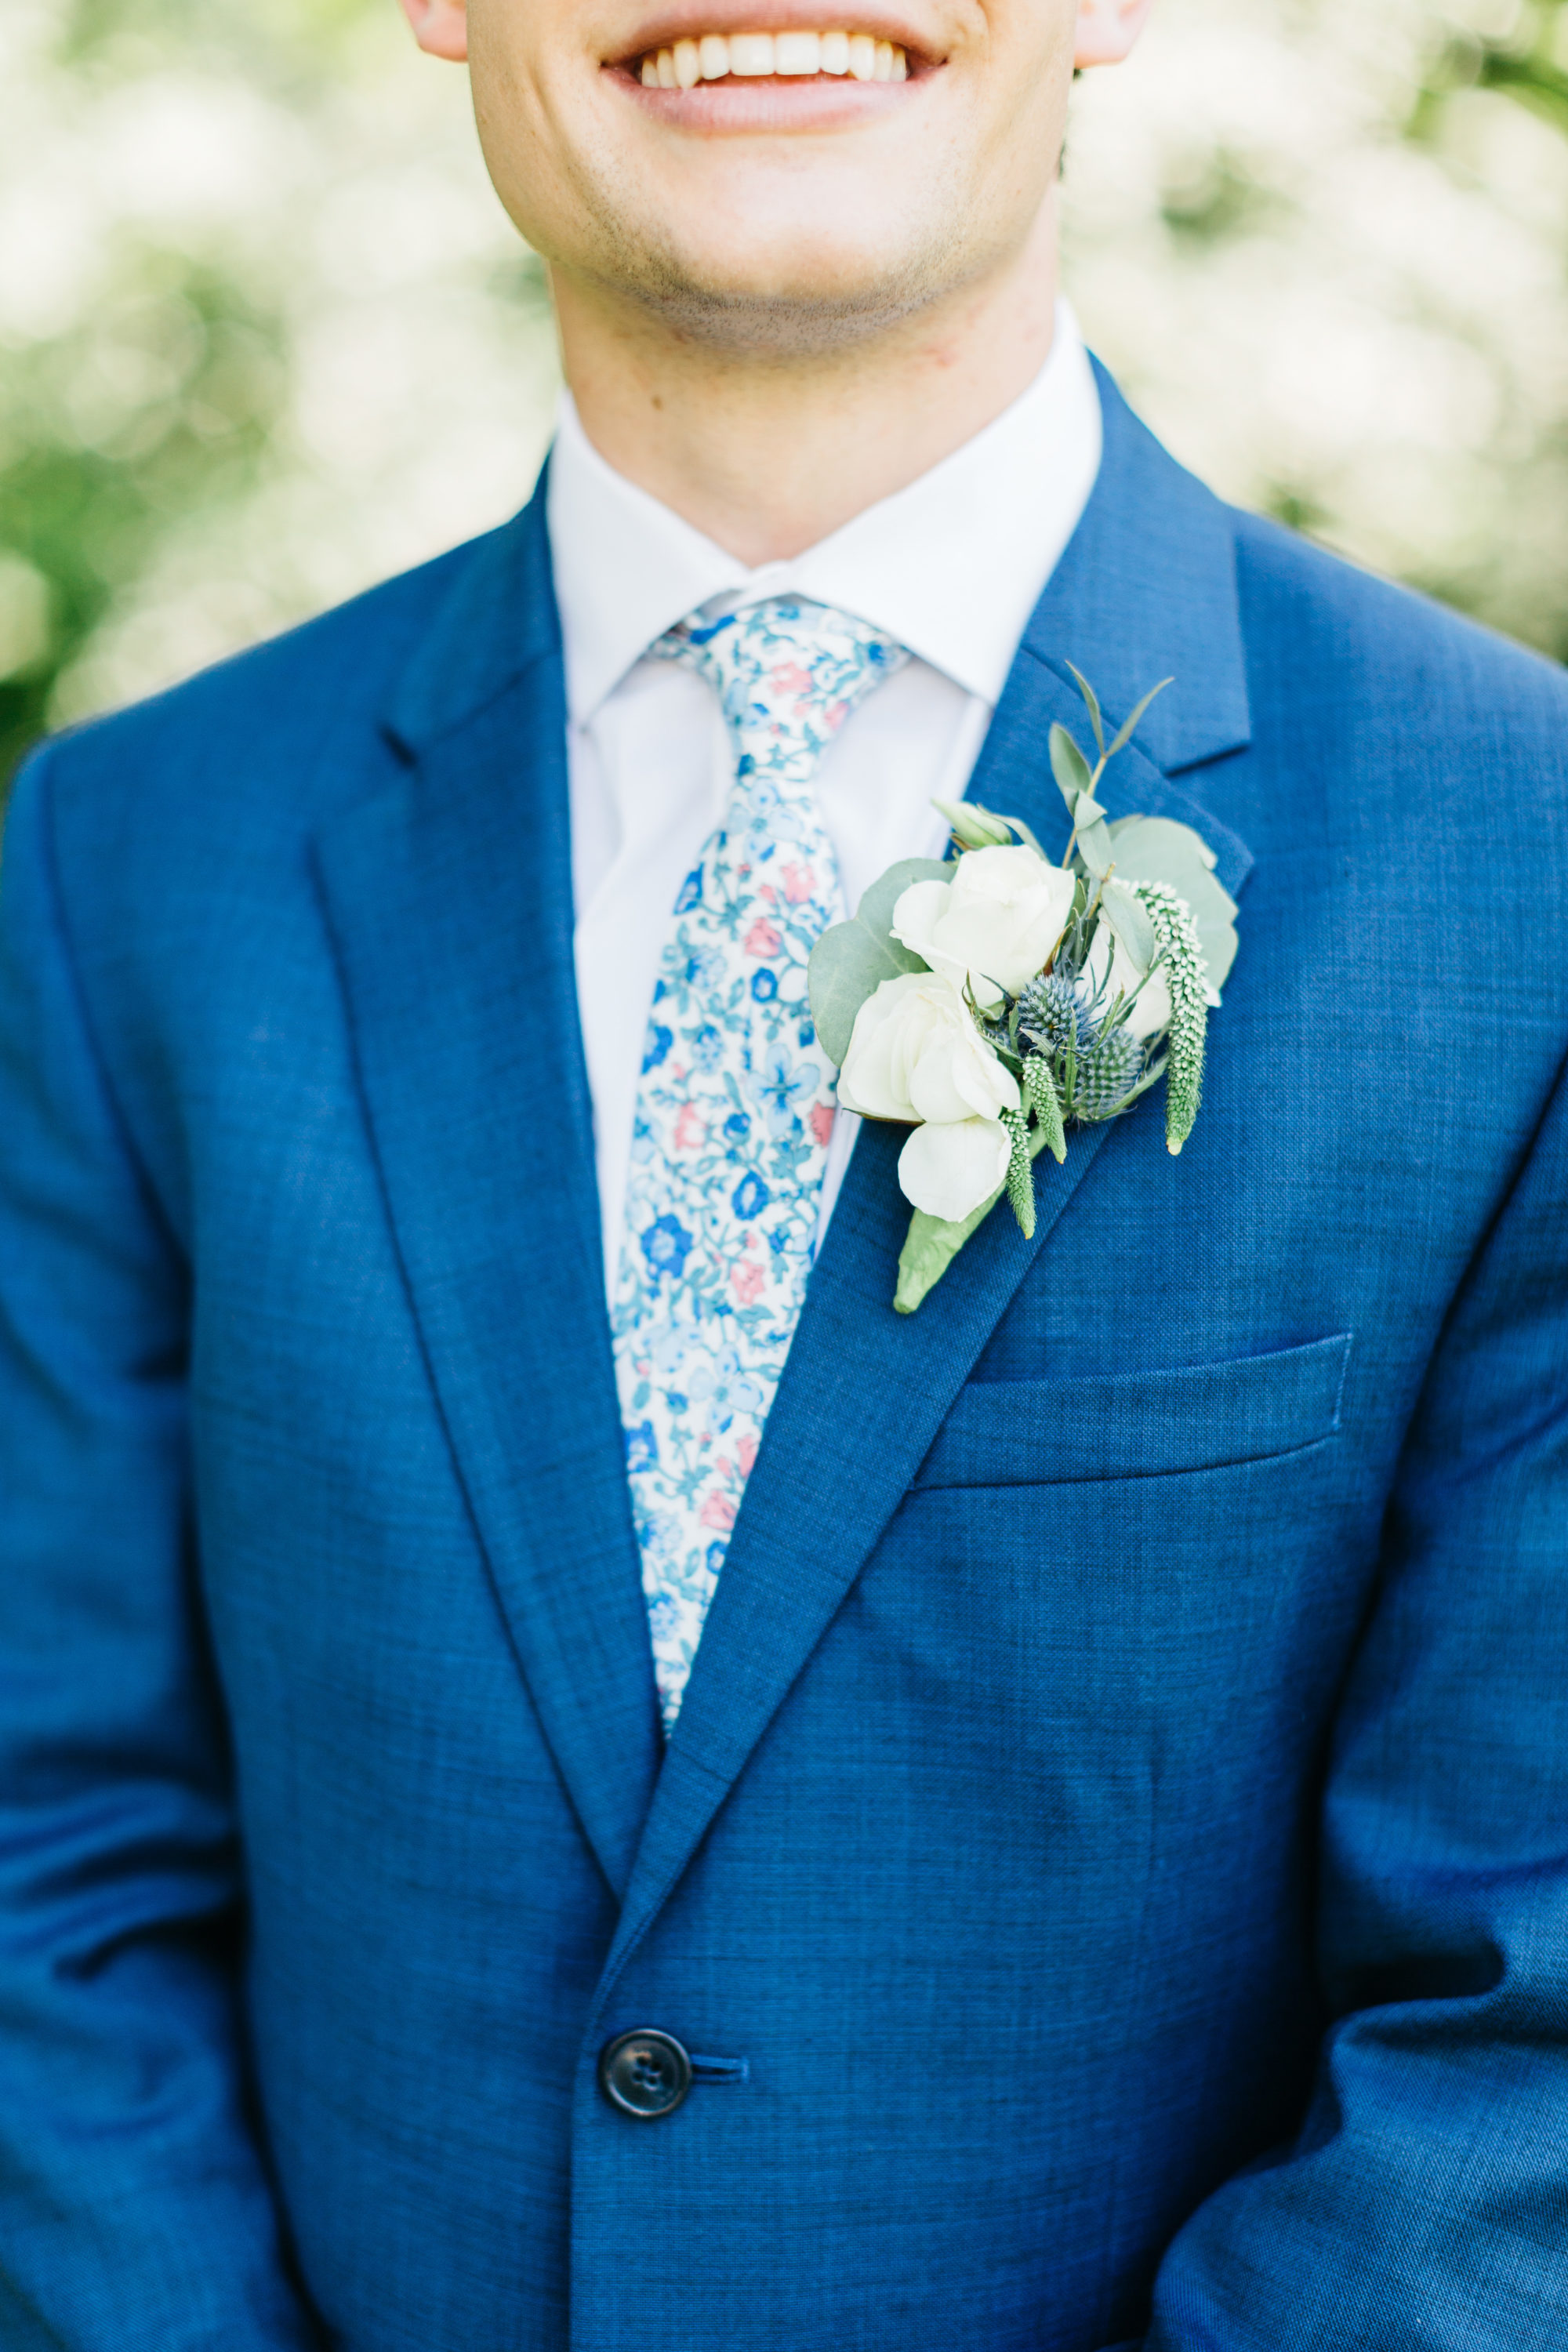 Groom boutonniere detail photo